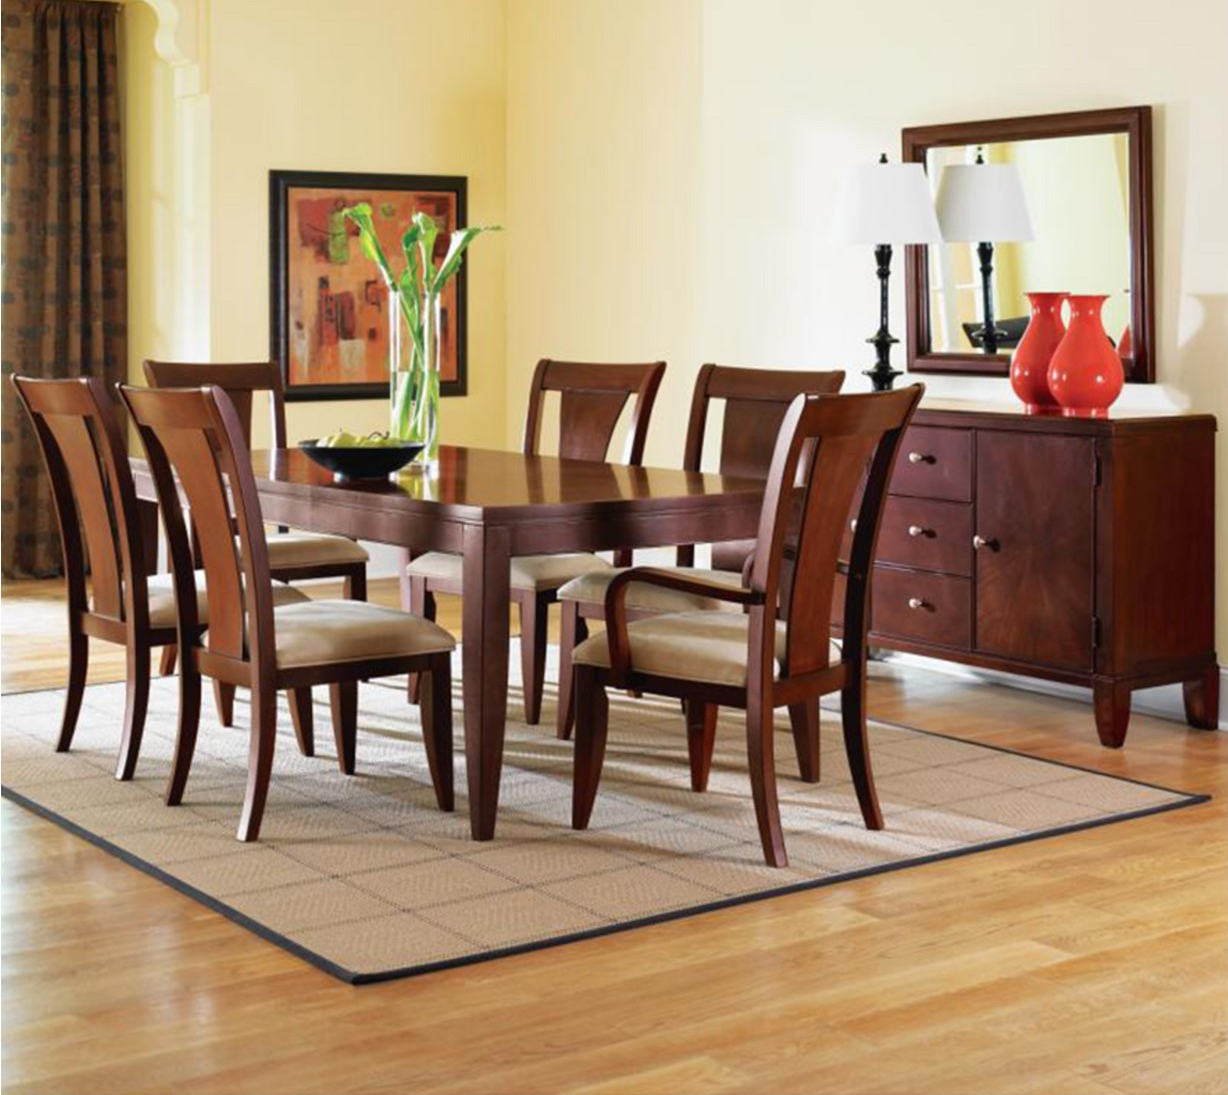 Etonnant Metropolitan 7 Pc. Contemporary Dining Set, (Dining Table U0026 6 Chairs) Only  $899! (Was $1,700!)